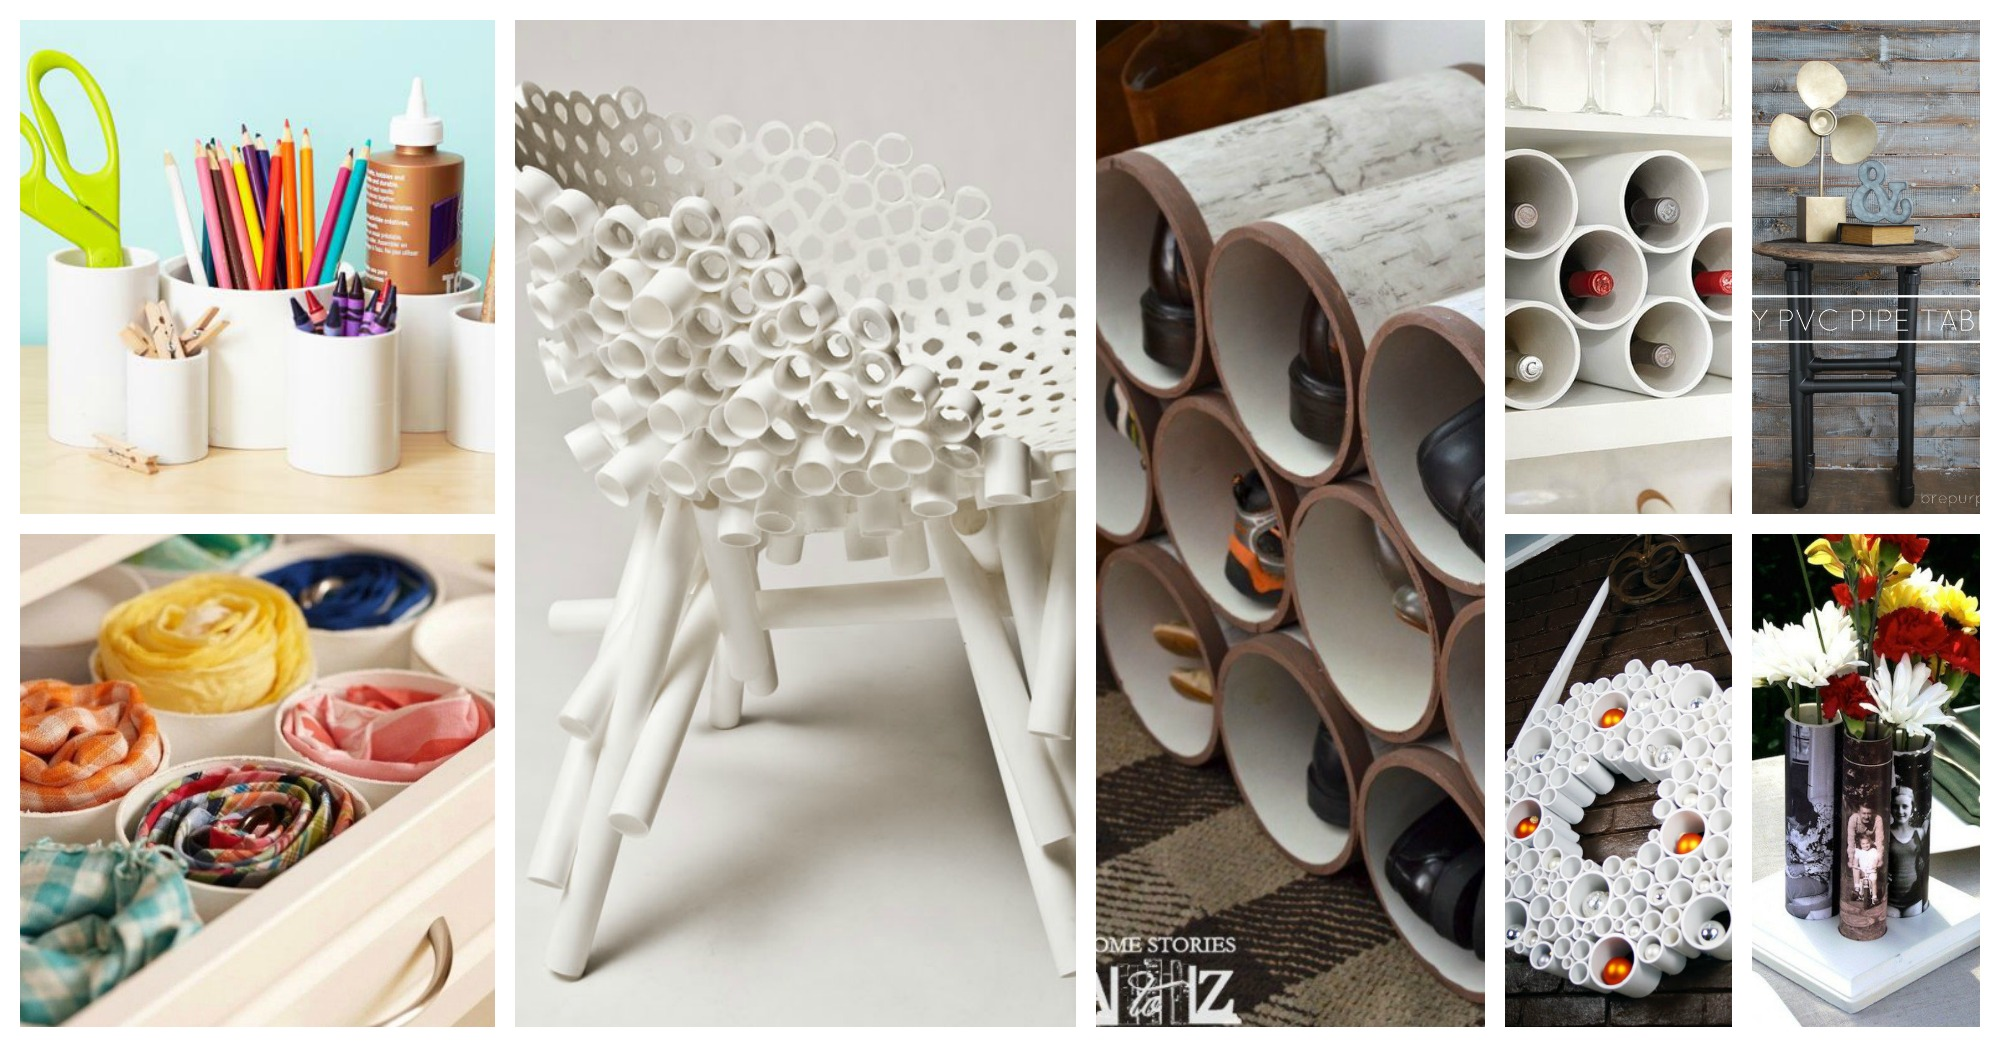 14 Magnificent DIY Ideas To Recycle The Amazing PVC Pipes